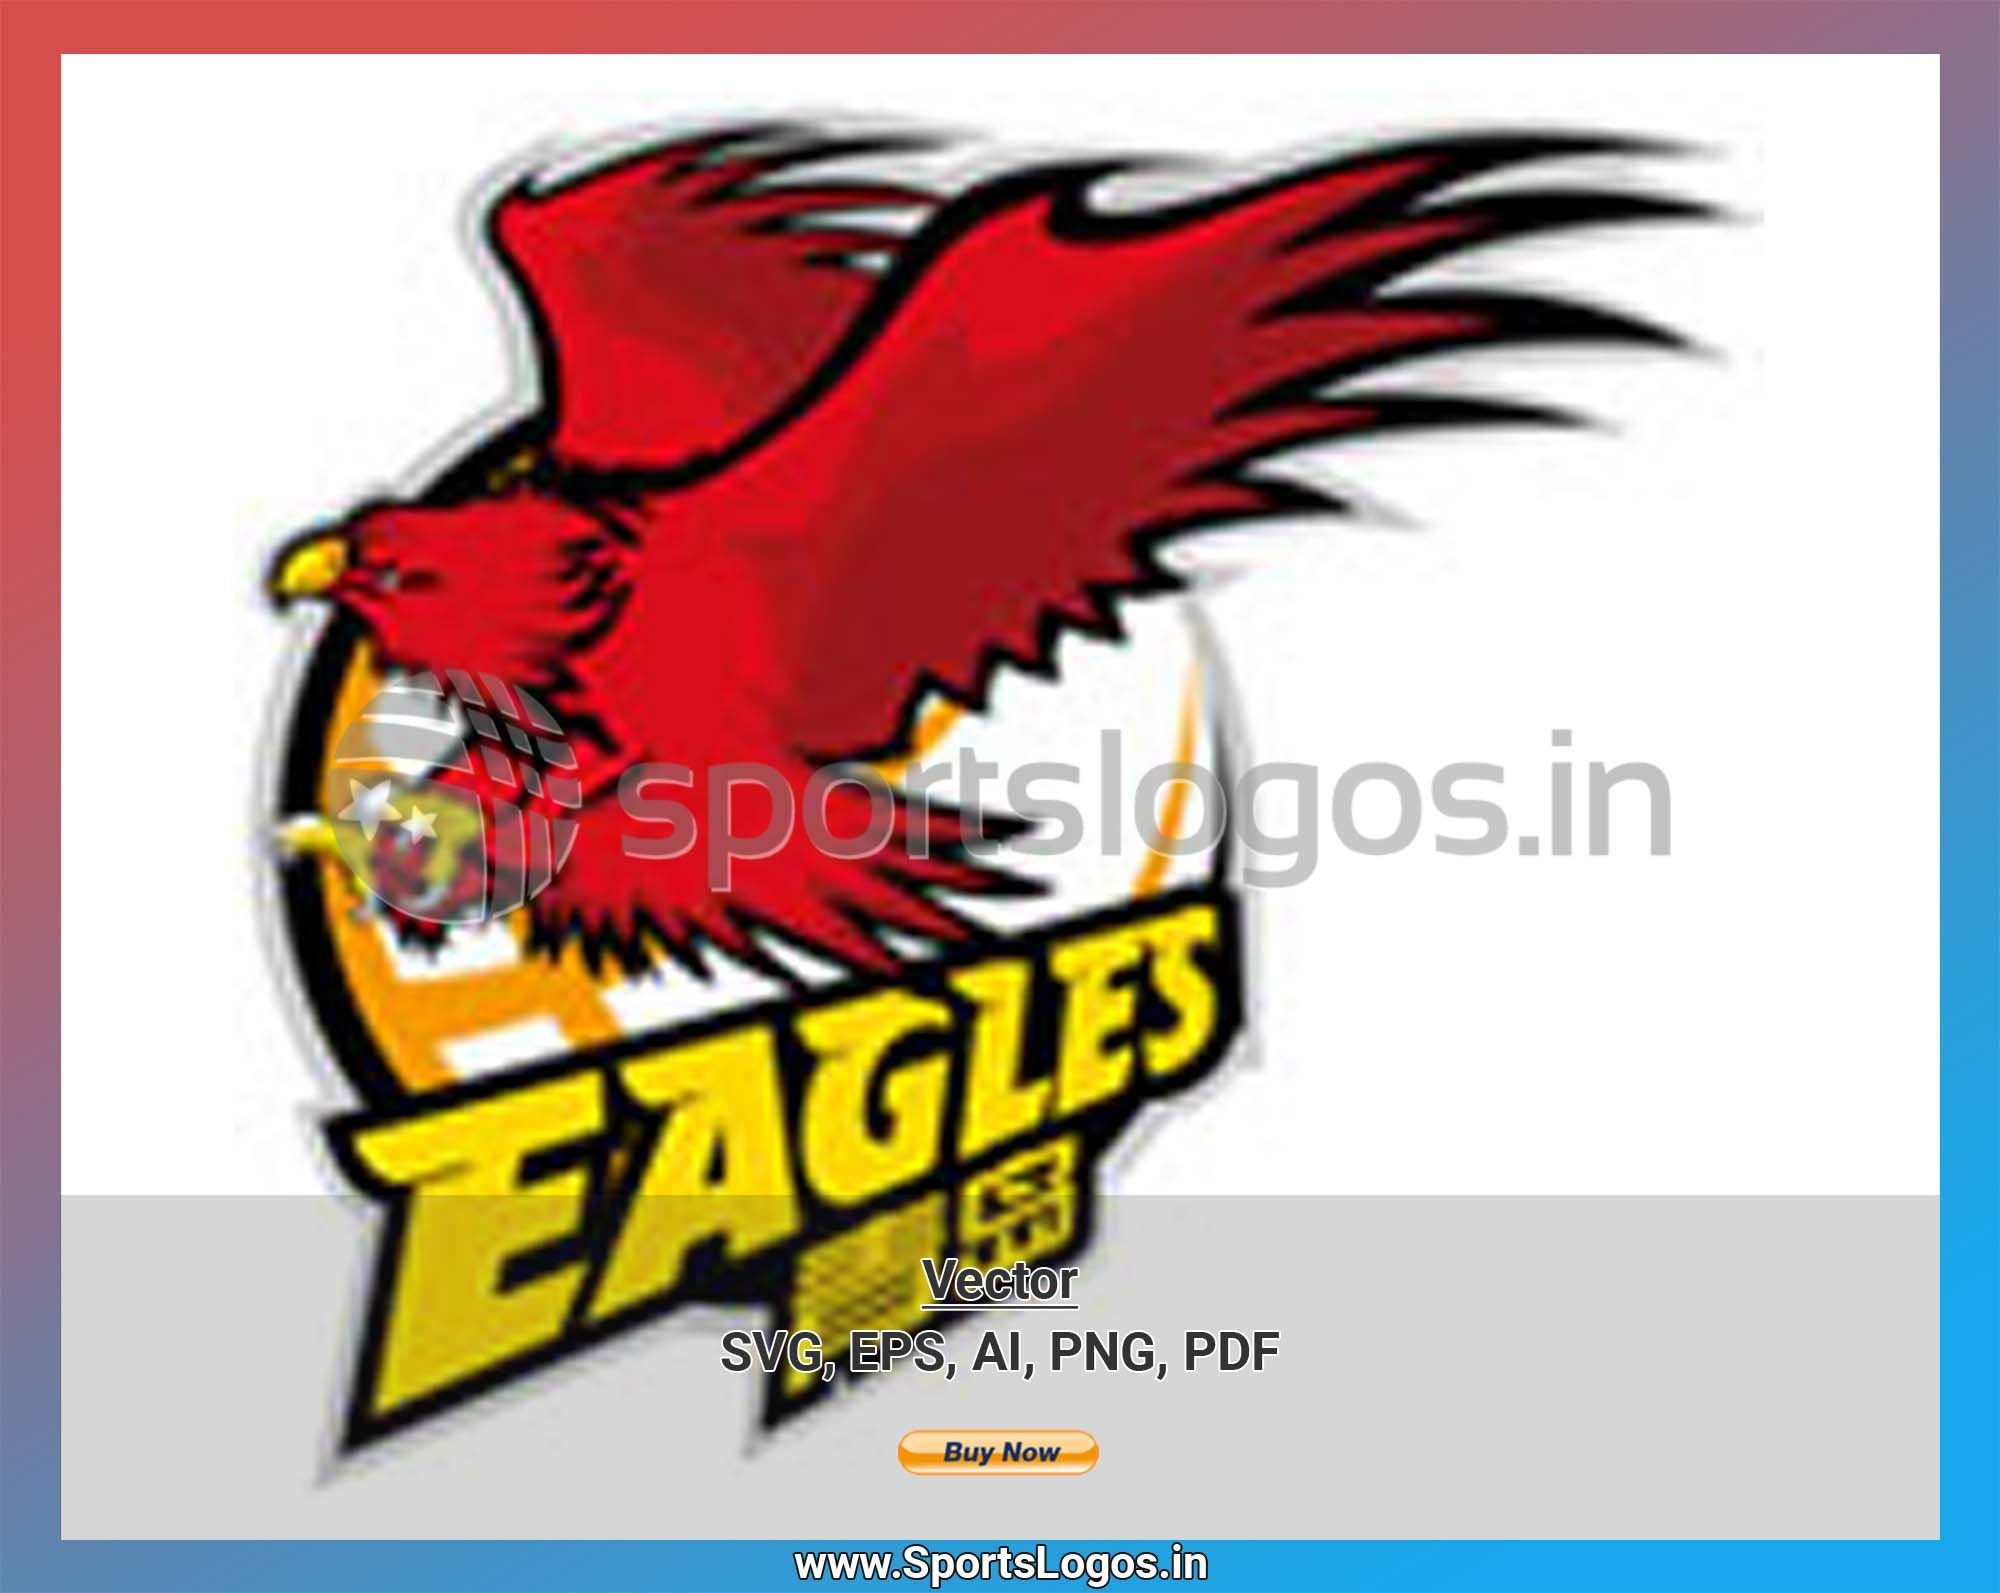 Qingdao Eagles Basketball Sports Vector SVG Logo in 5